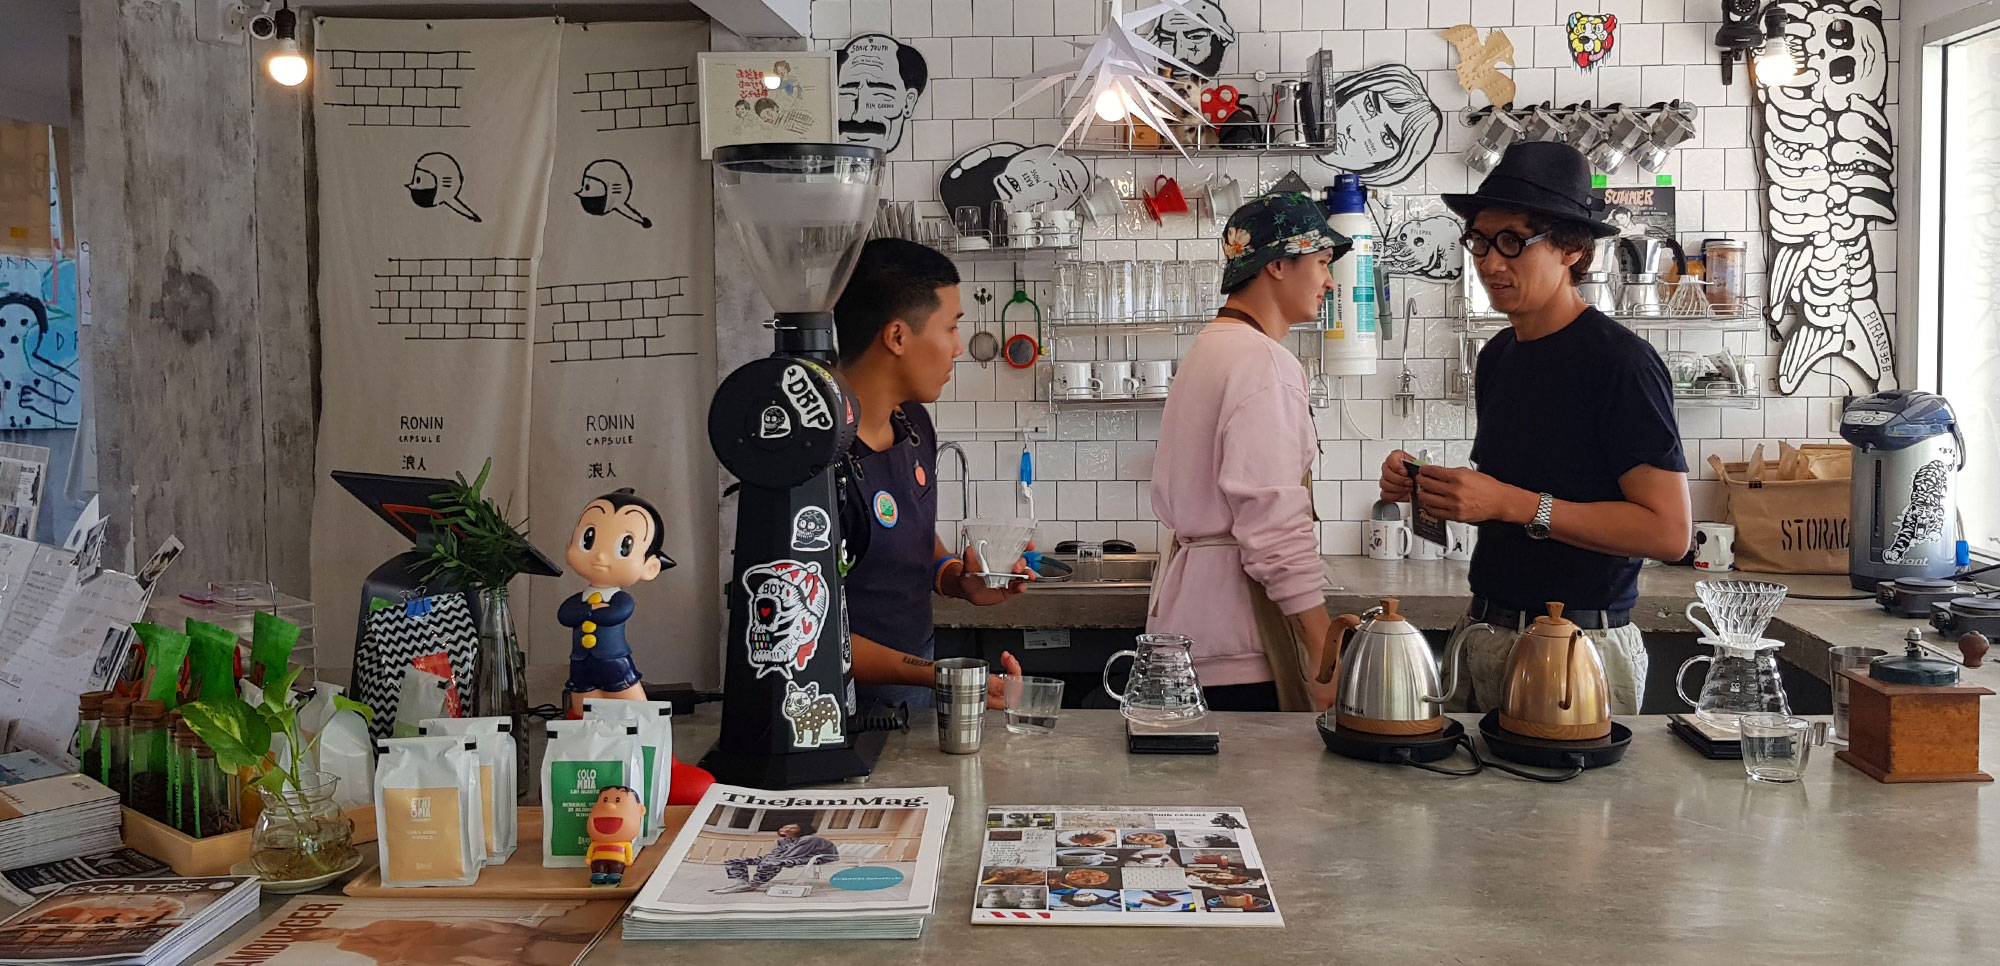 Ronin Capsule   A Cafe with Personality   Hua Hin   Thailand